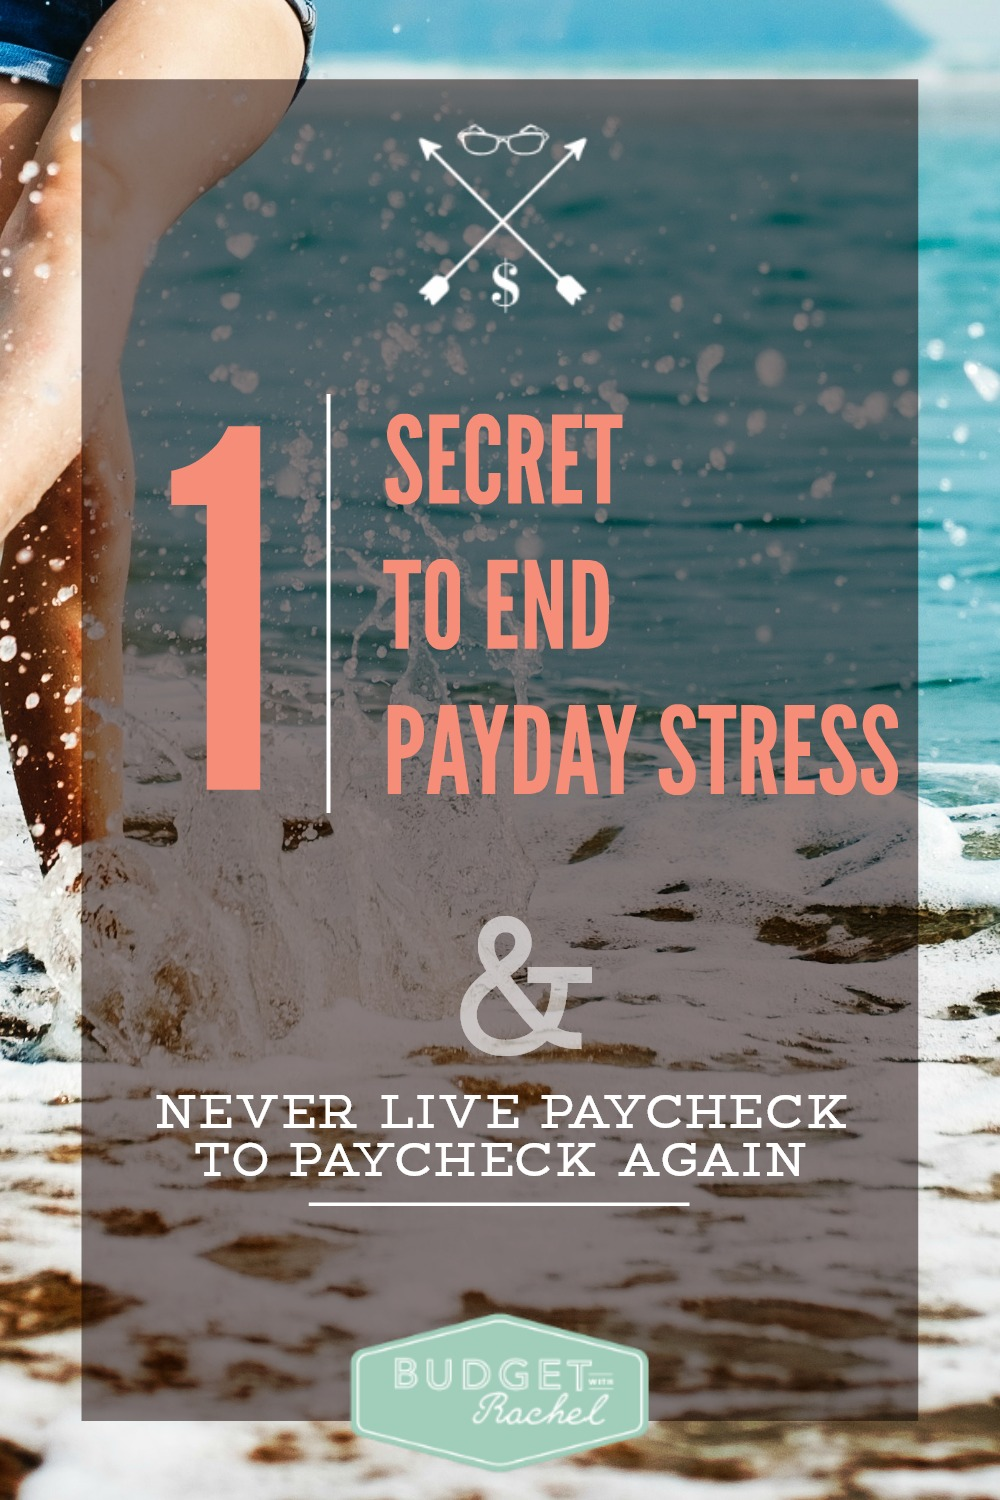 The Secret to Eliminate the Stress of Living Paycheck to Paycheck. Wow! This is such a smart idea! I think everyone should live like this because it works! Since I learned this secret, I have had no worries about how much money we have left at the end of the month. I don't even know when our paydays are now because it doesn't matter!